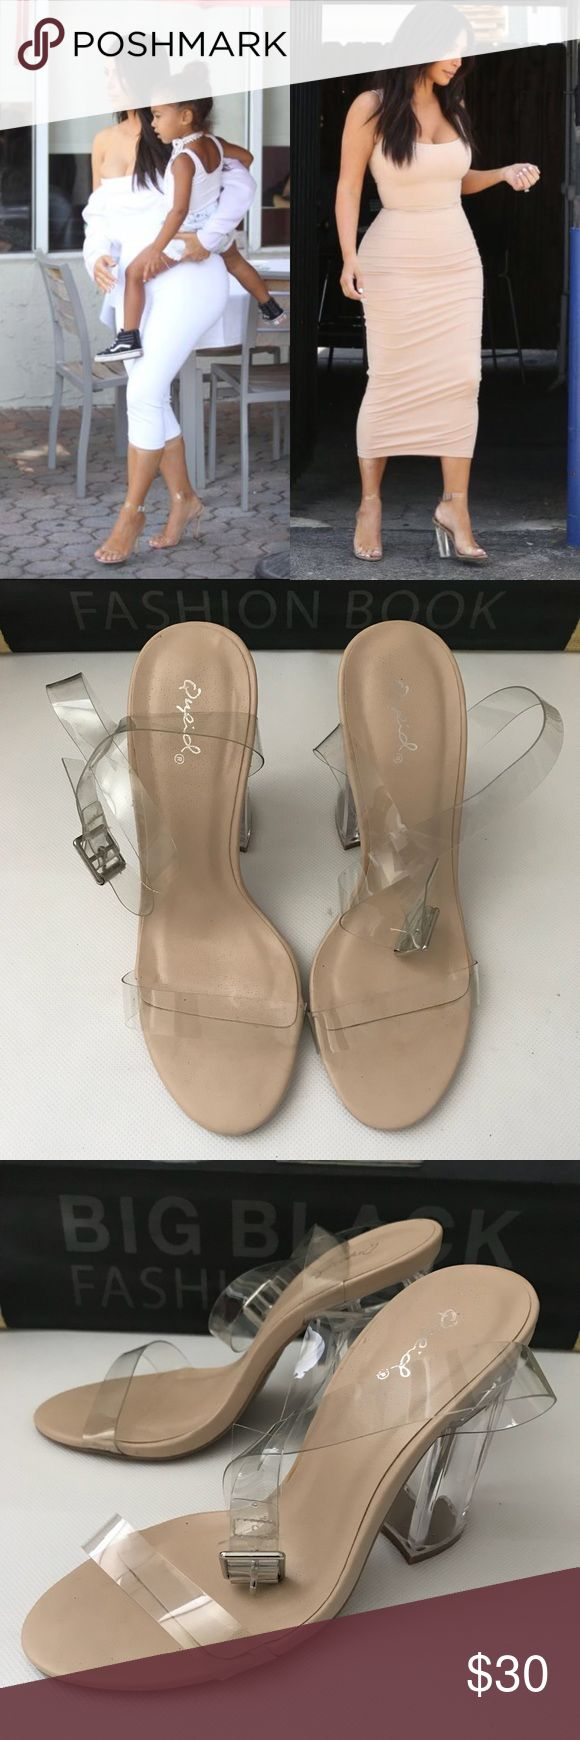 Clear High Heels Fashion Shoes Size 7. Used once Qupid Shoes Heels